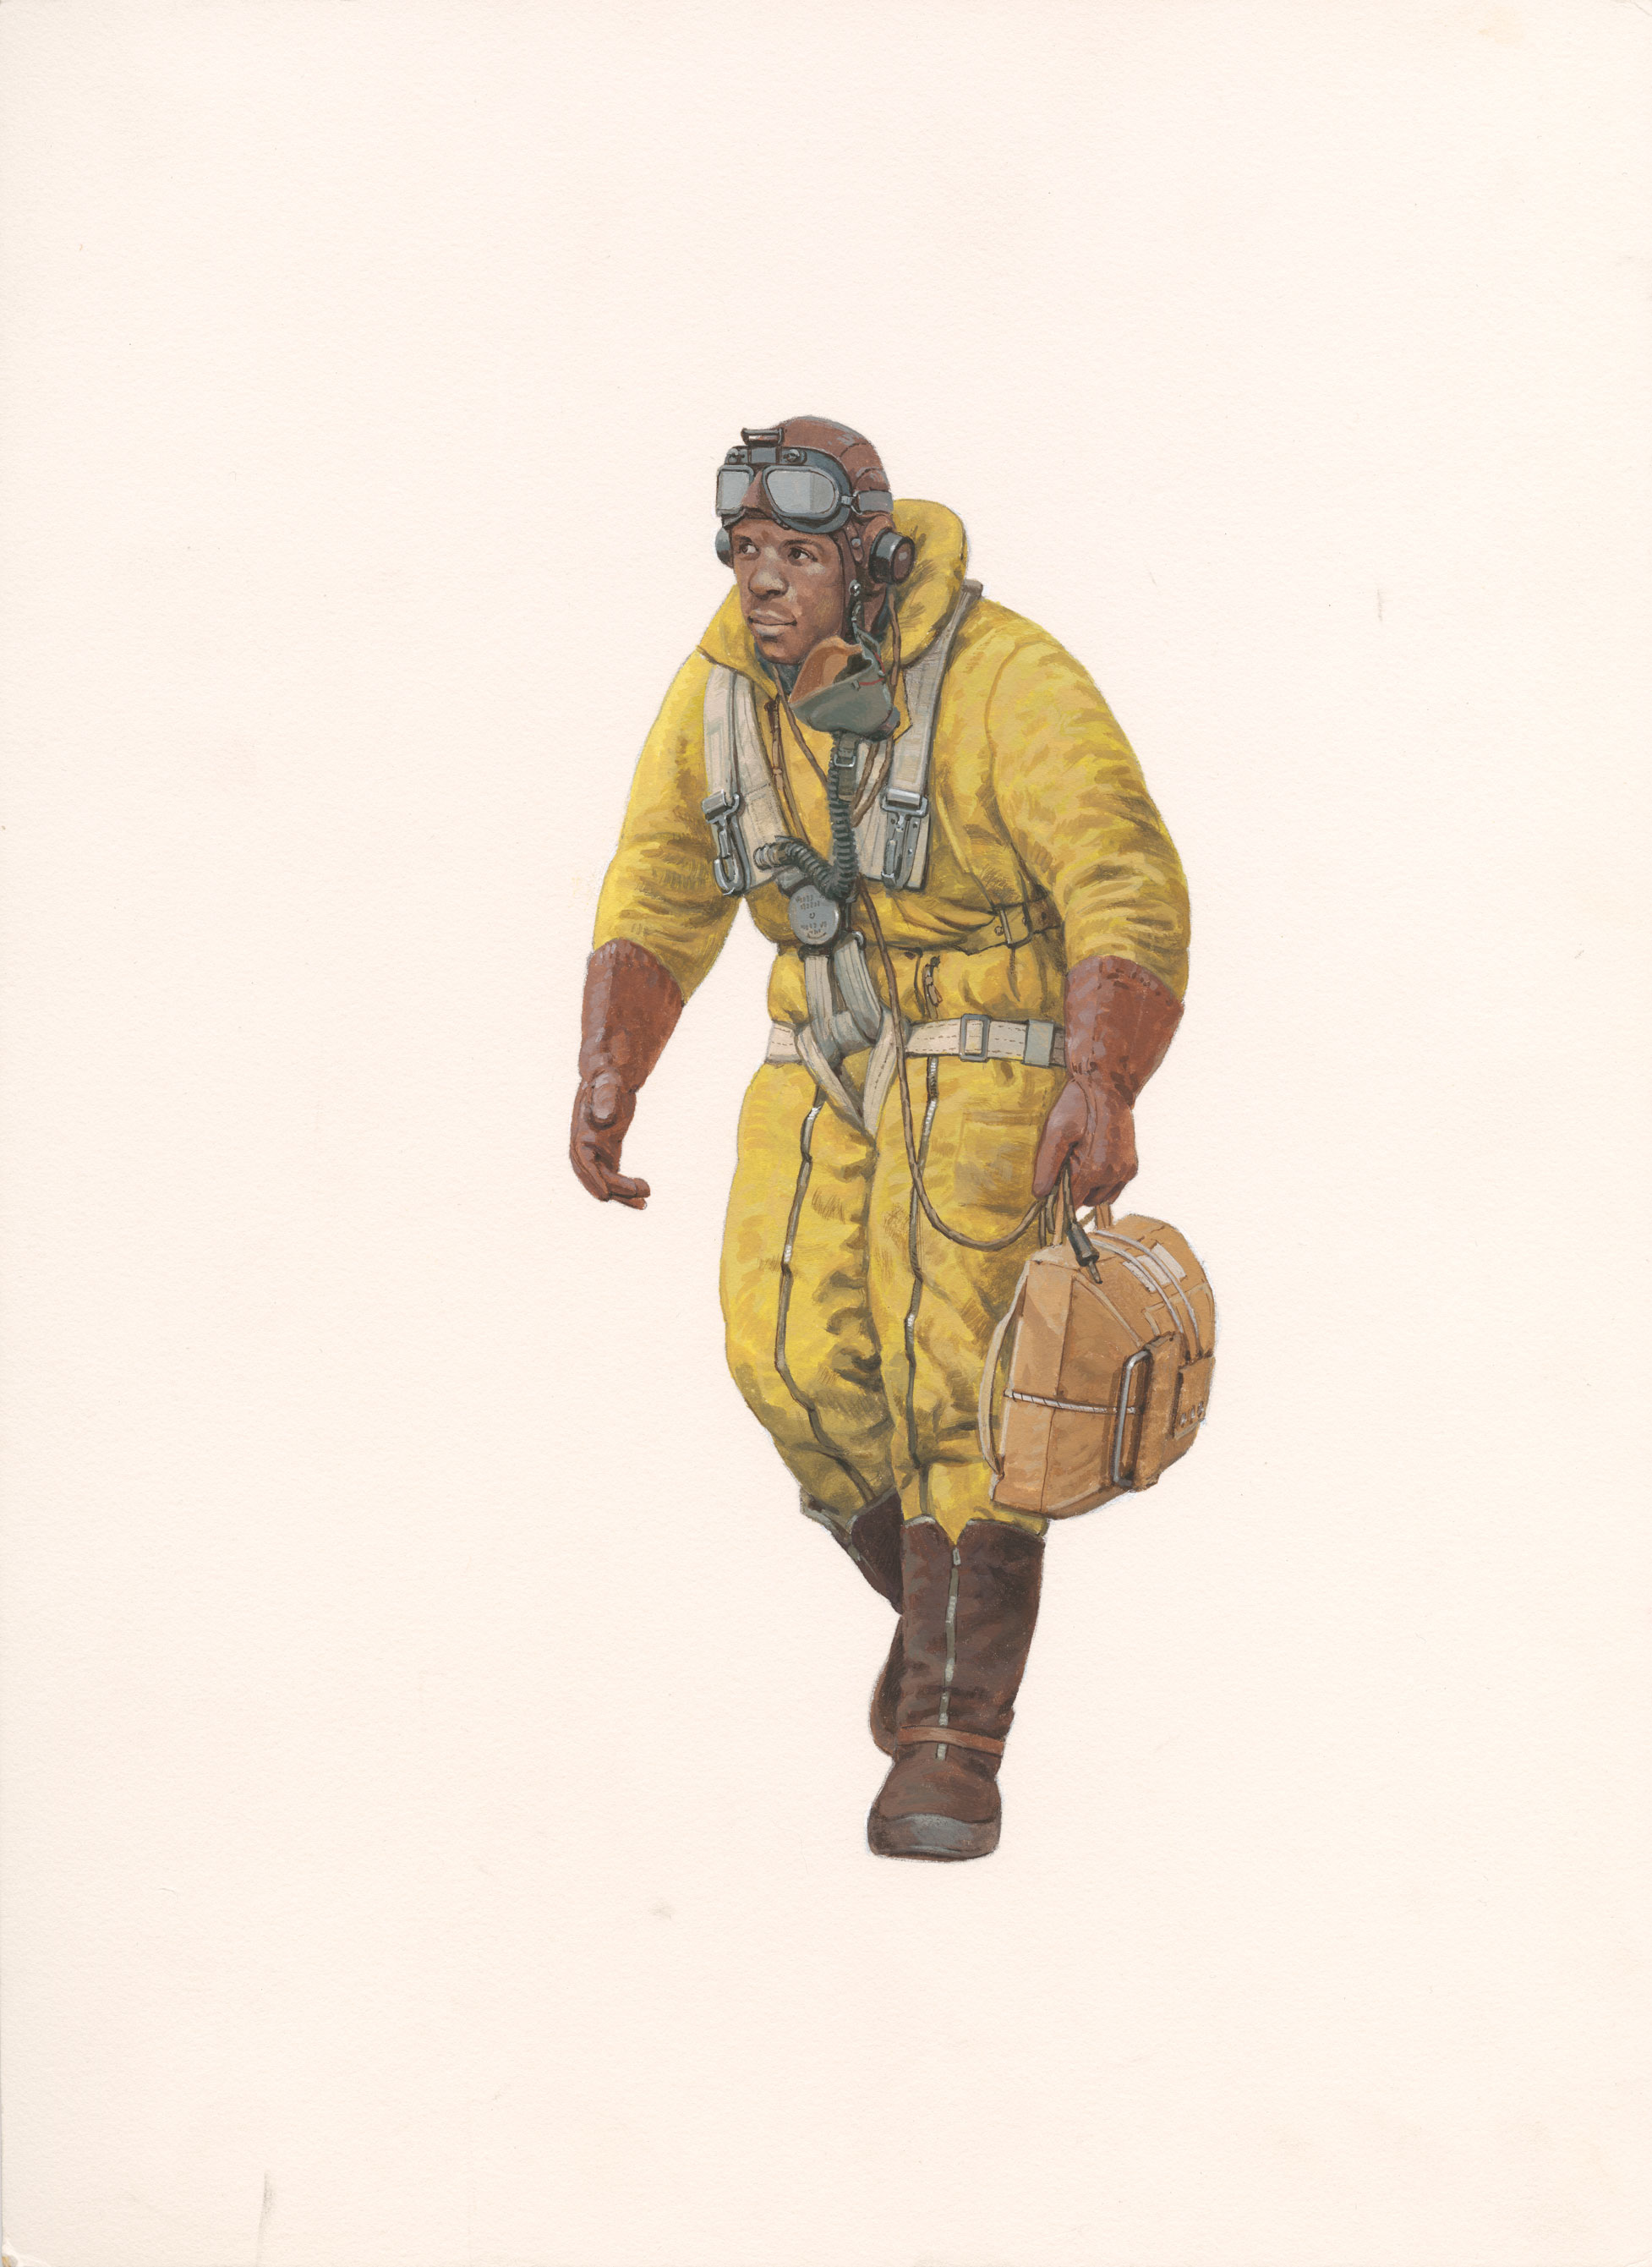 A painting of a black Lancaster Air Gunner in a thick yellow flight suit carrying a bag.